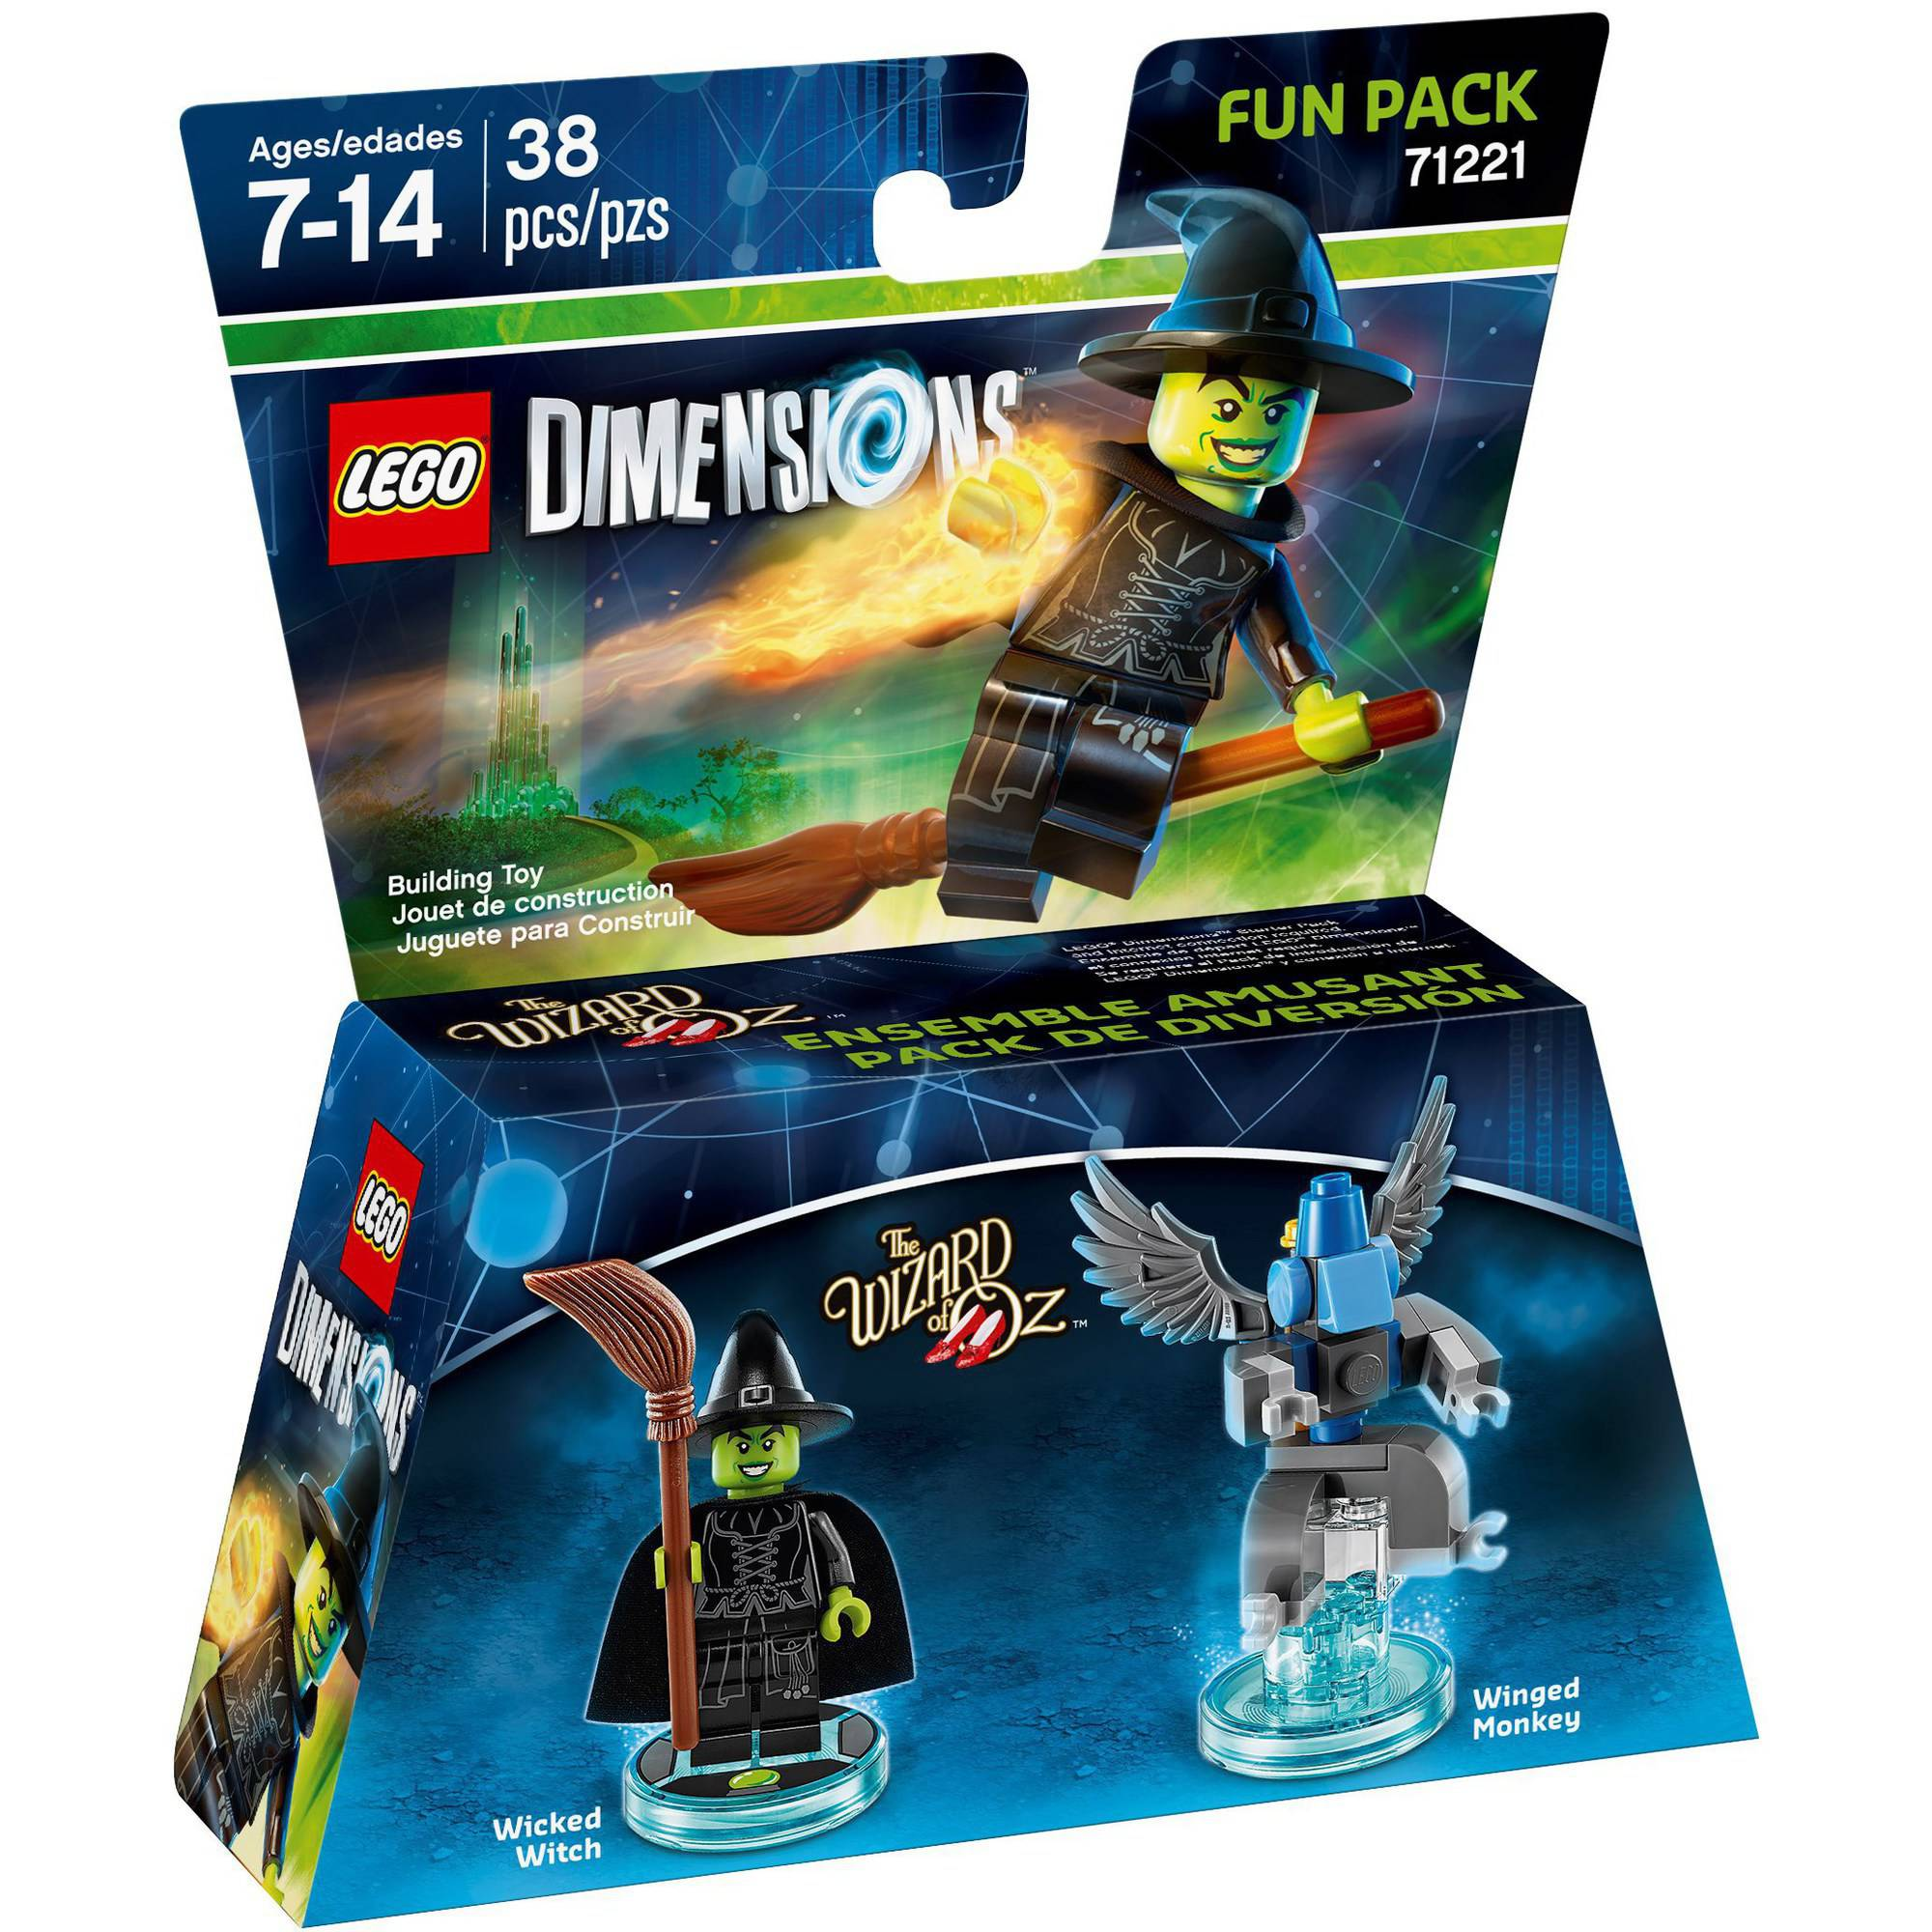 LEGO Dimensions Wicked Witch of the West (Wizard of Oz) Fun Pack (Universal)